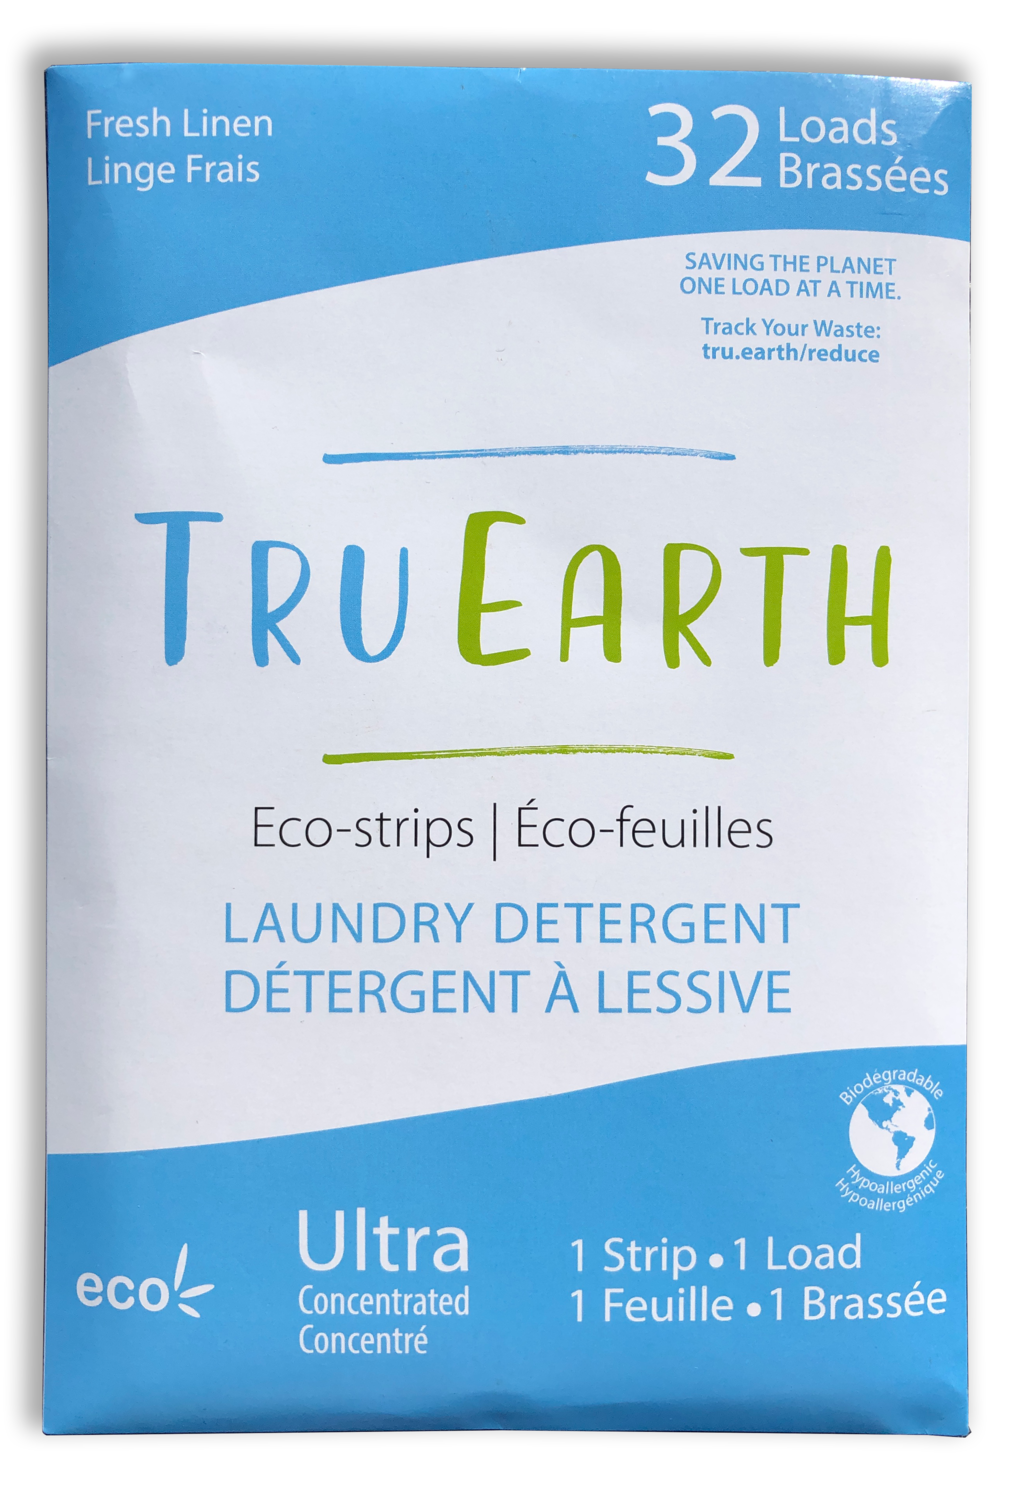 Tru Earth - Fresh Linen Laundry Detergent (32 Loads)